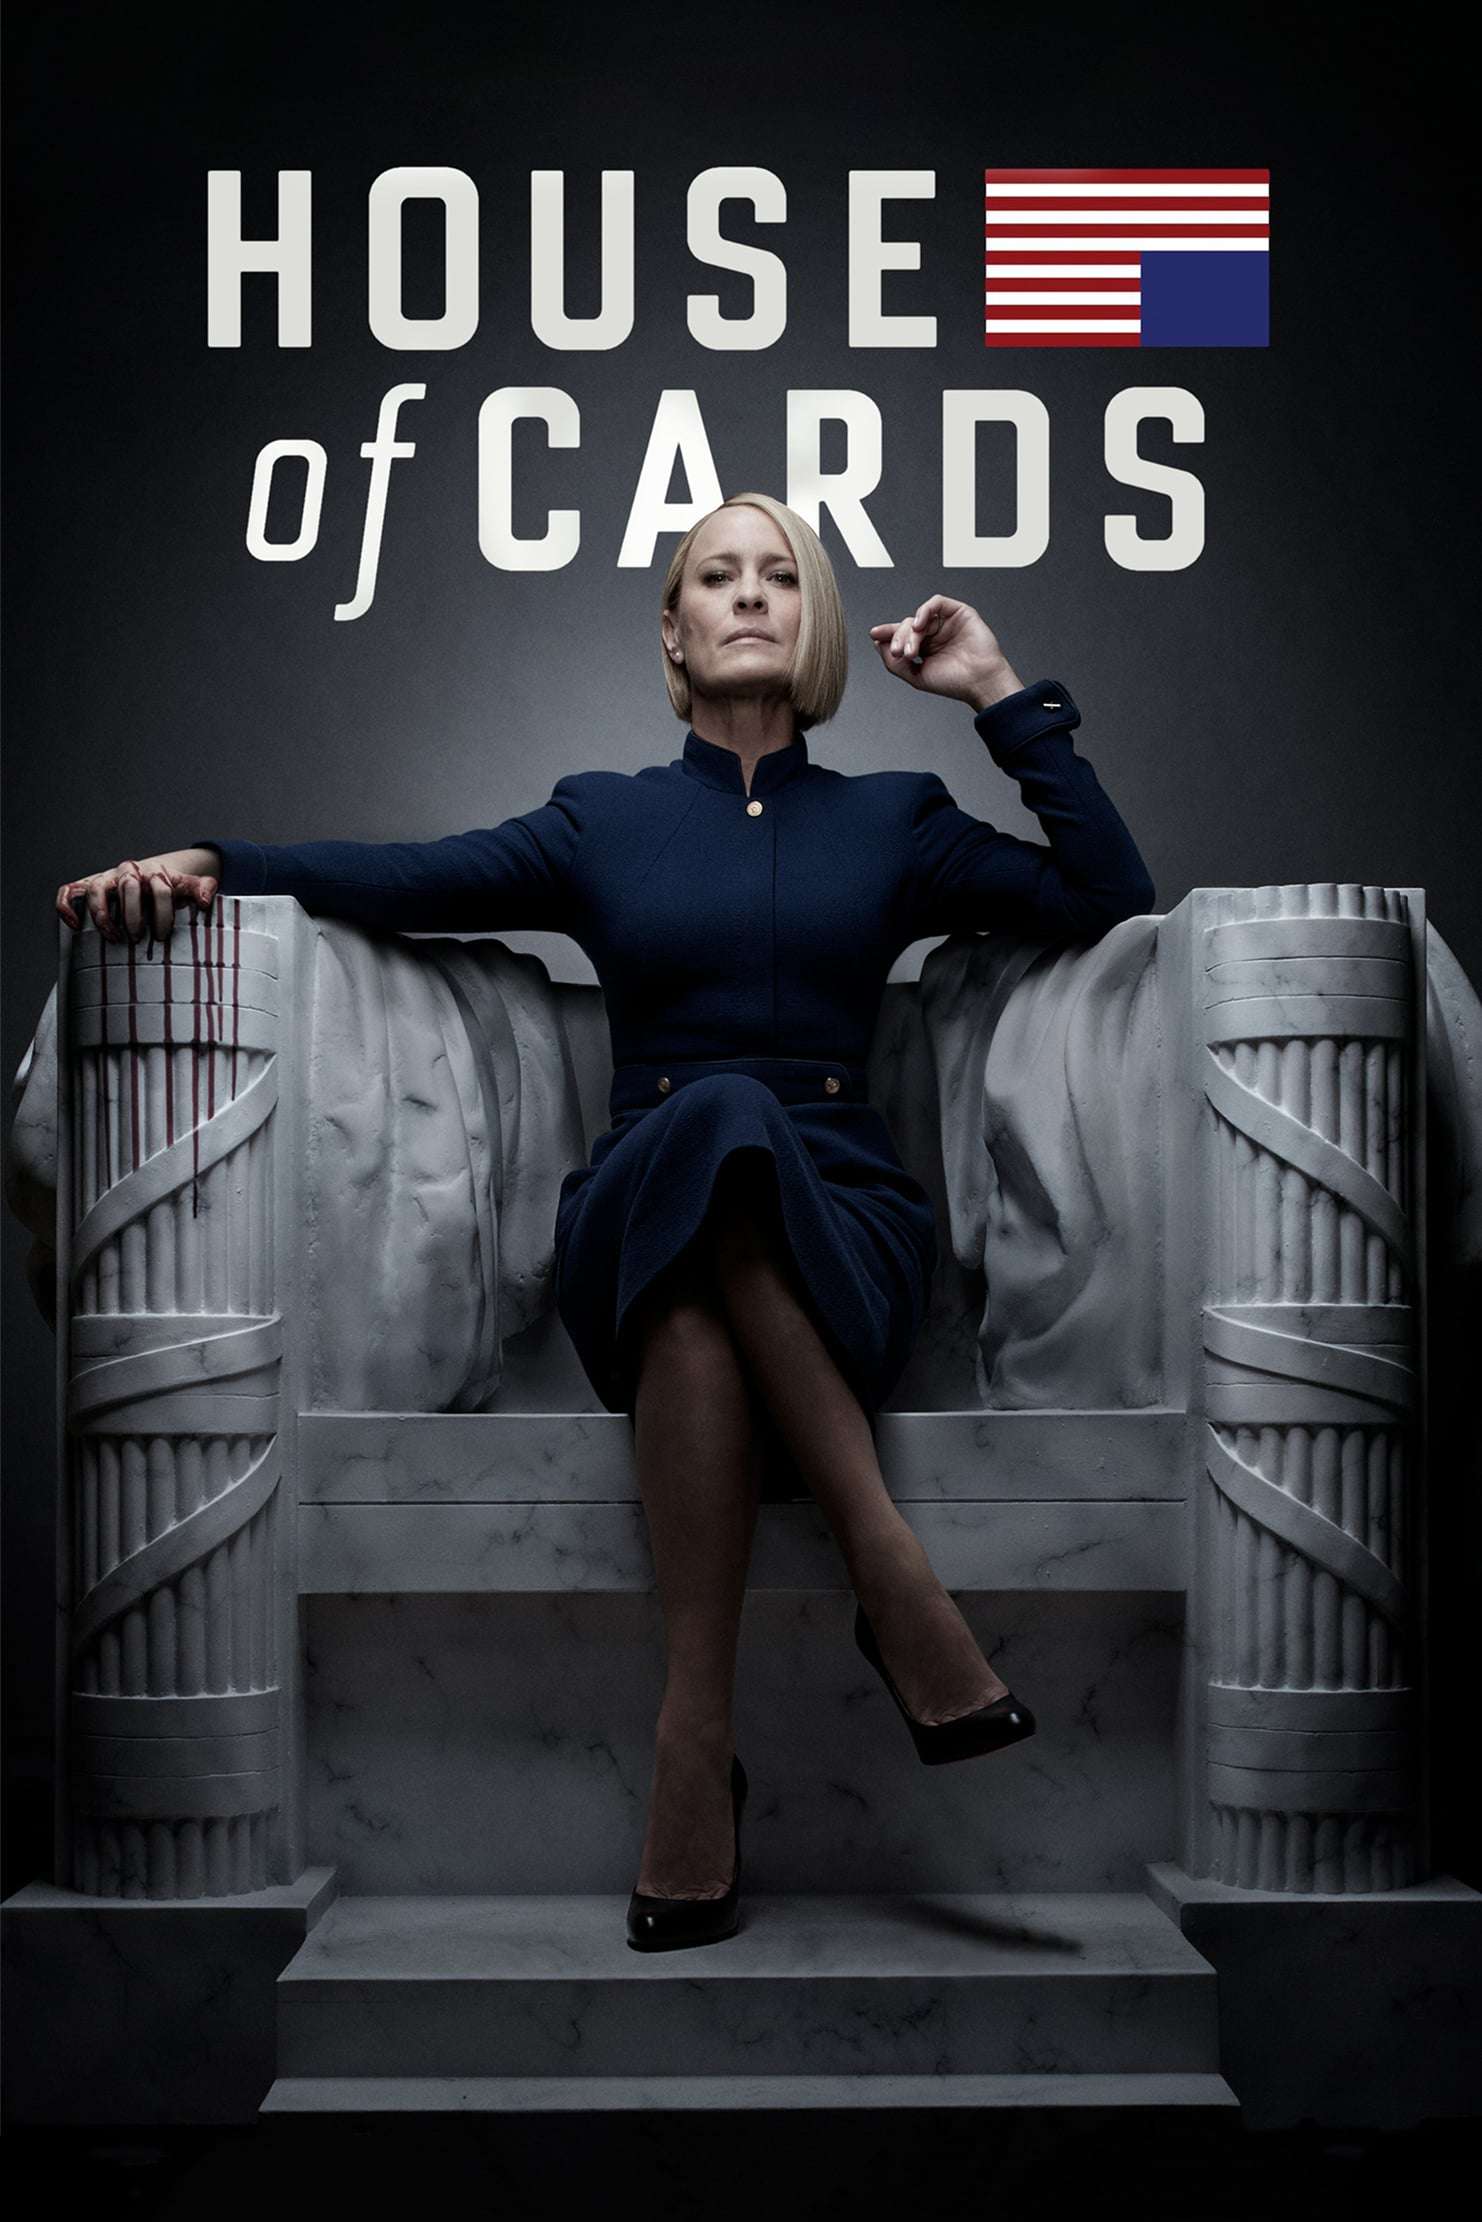 House of Cards' />